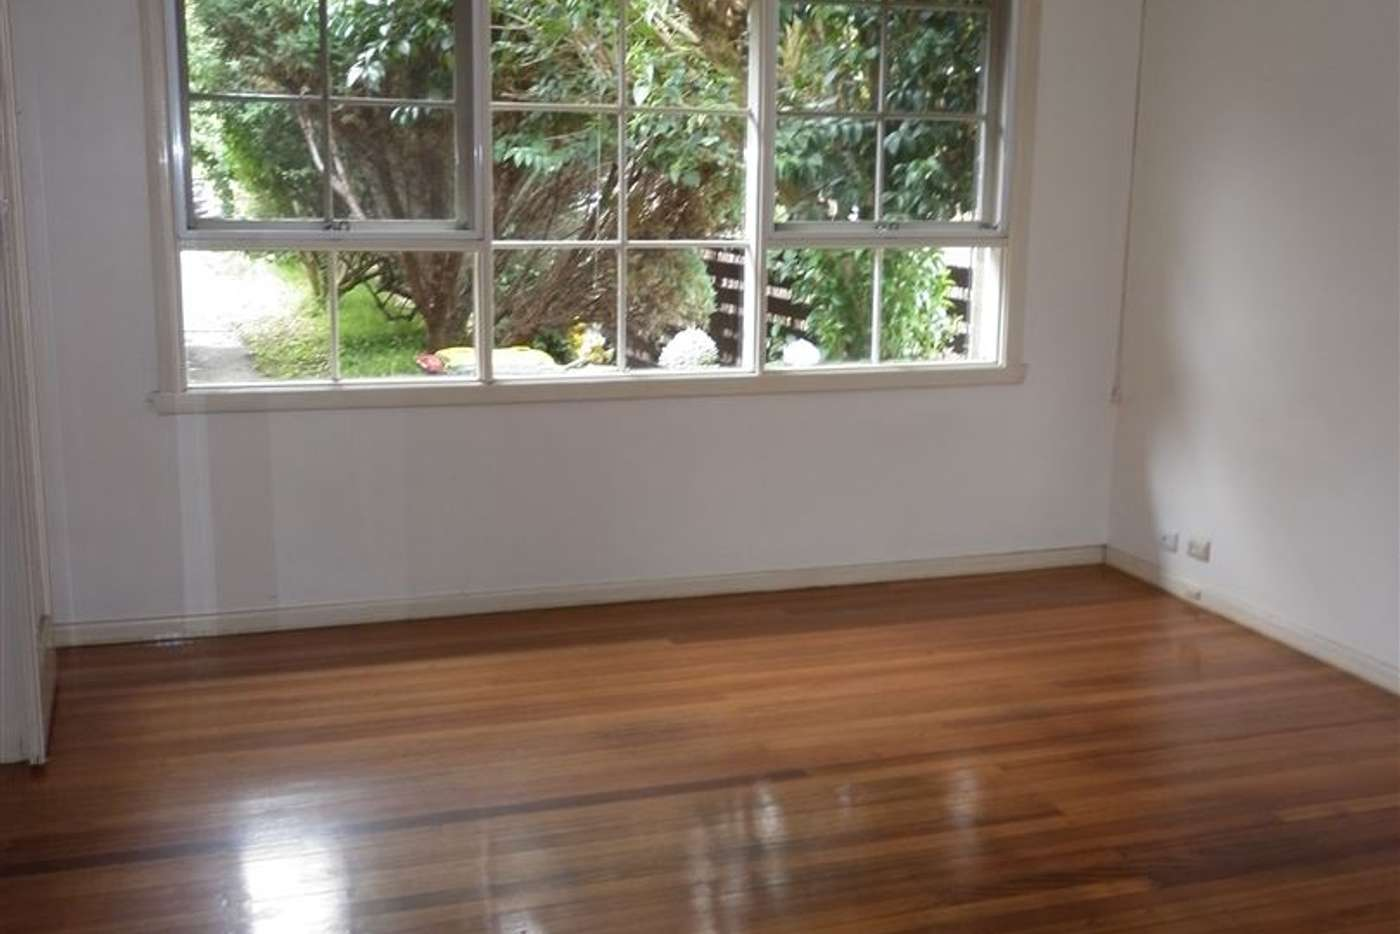 Seventh view of Homely unit listing, 4/7 Grenfell Road, Mount Waverley VIC 3149